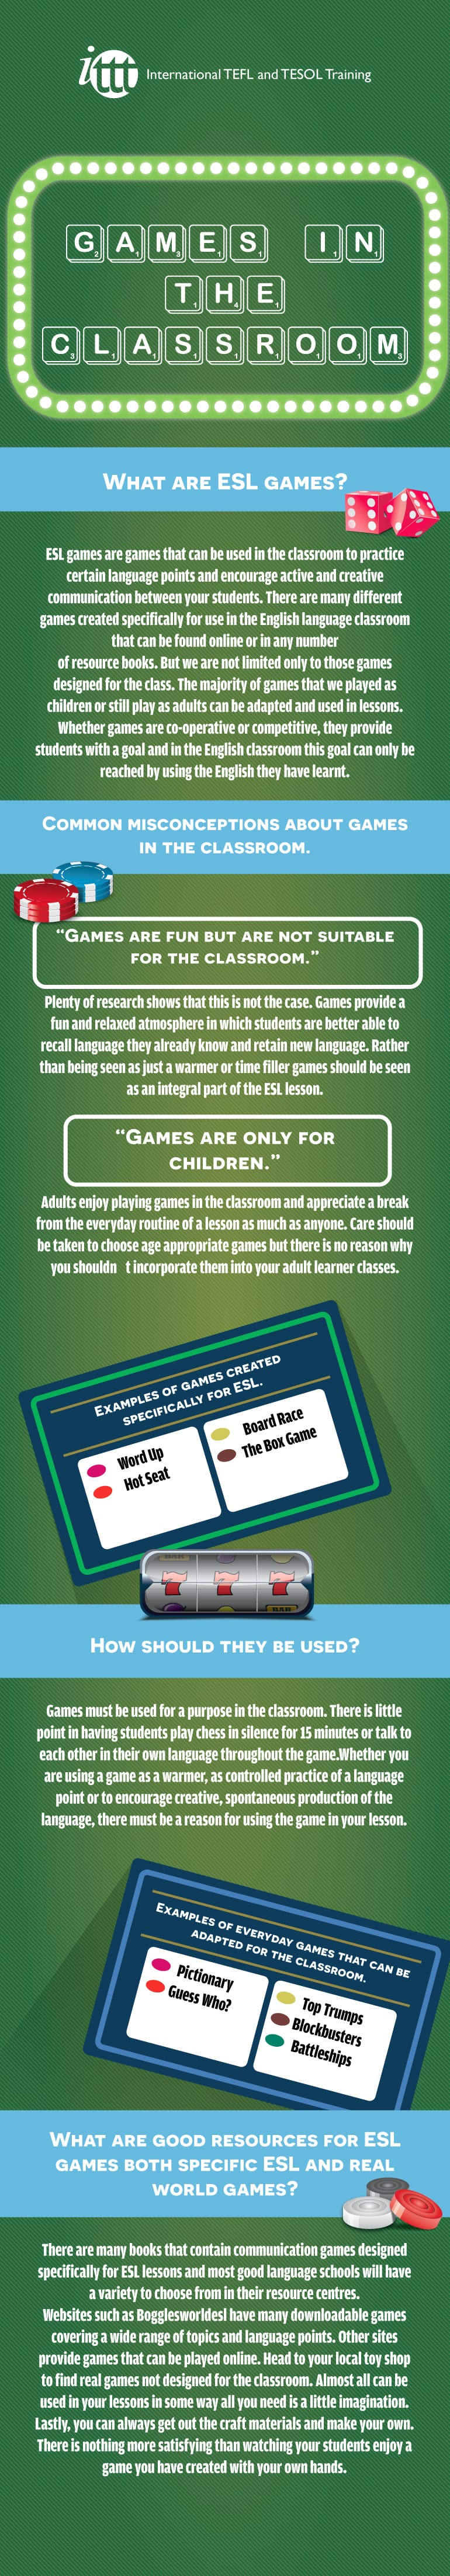 Infographic Games in the Classroom